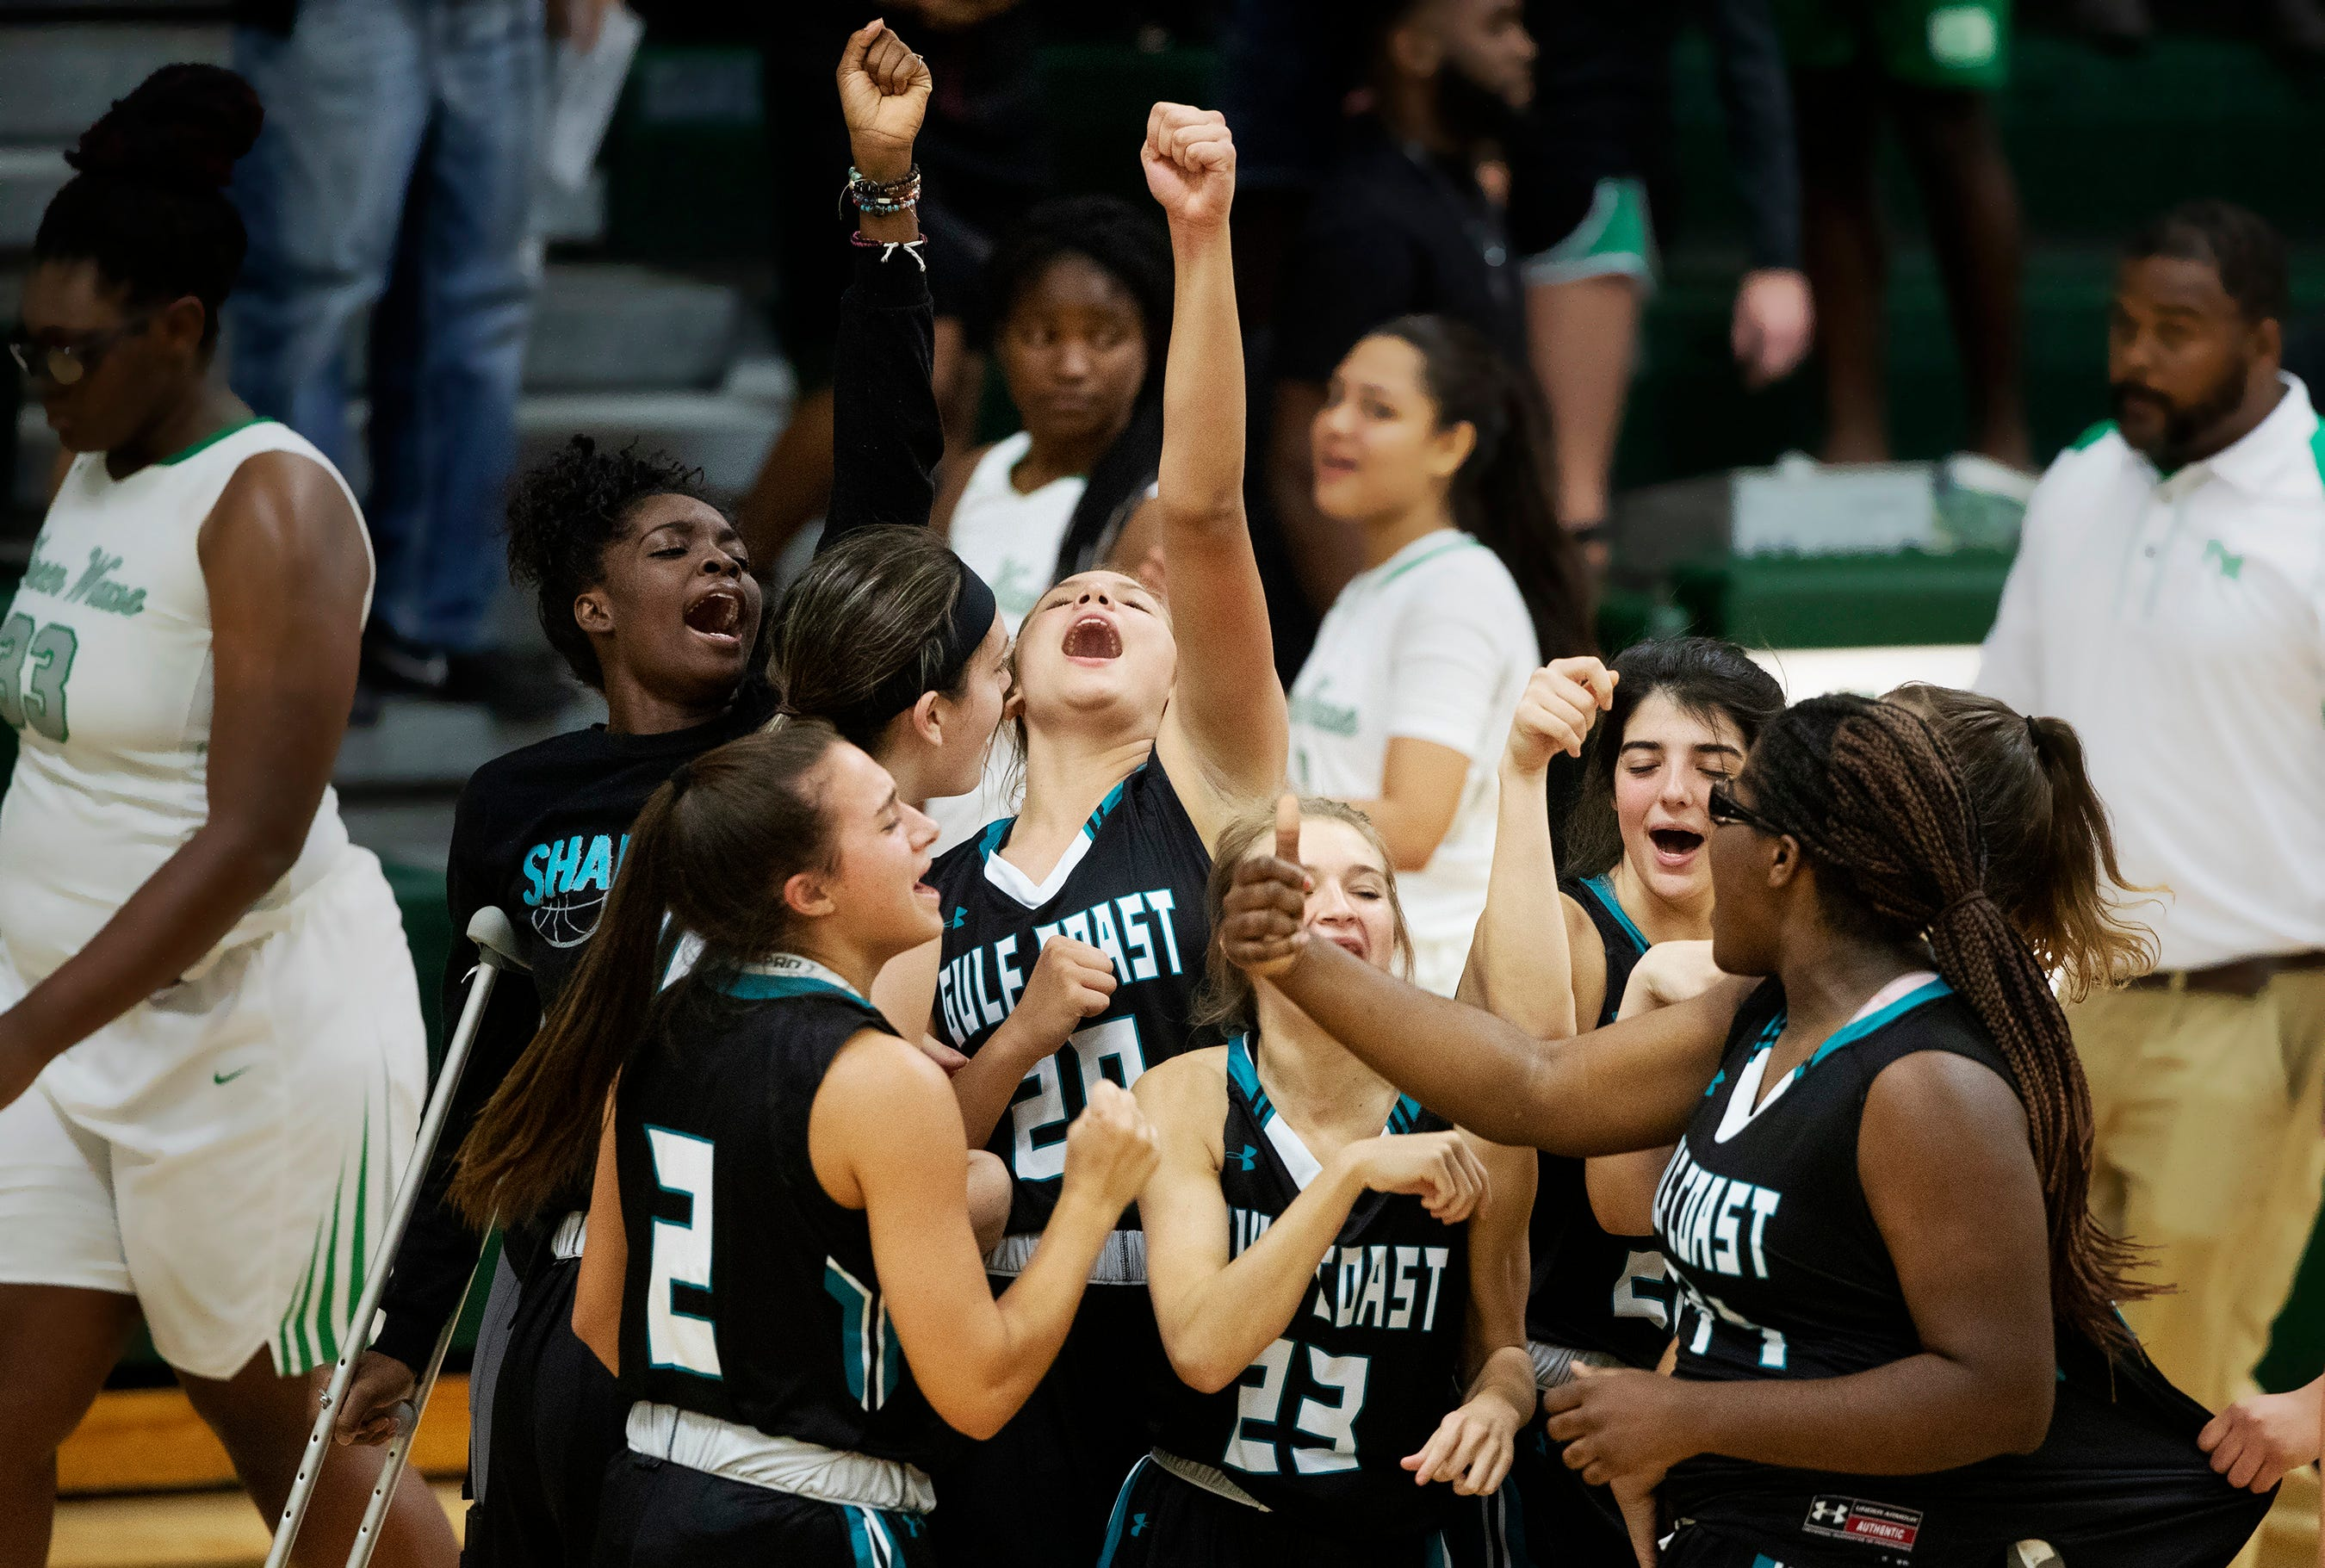 Gulf Coast High School basketball players celebrate beating Fort Myers 71-67 this season. Next year all the Sharks' winter sports teams will be in the states largest classifications.